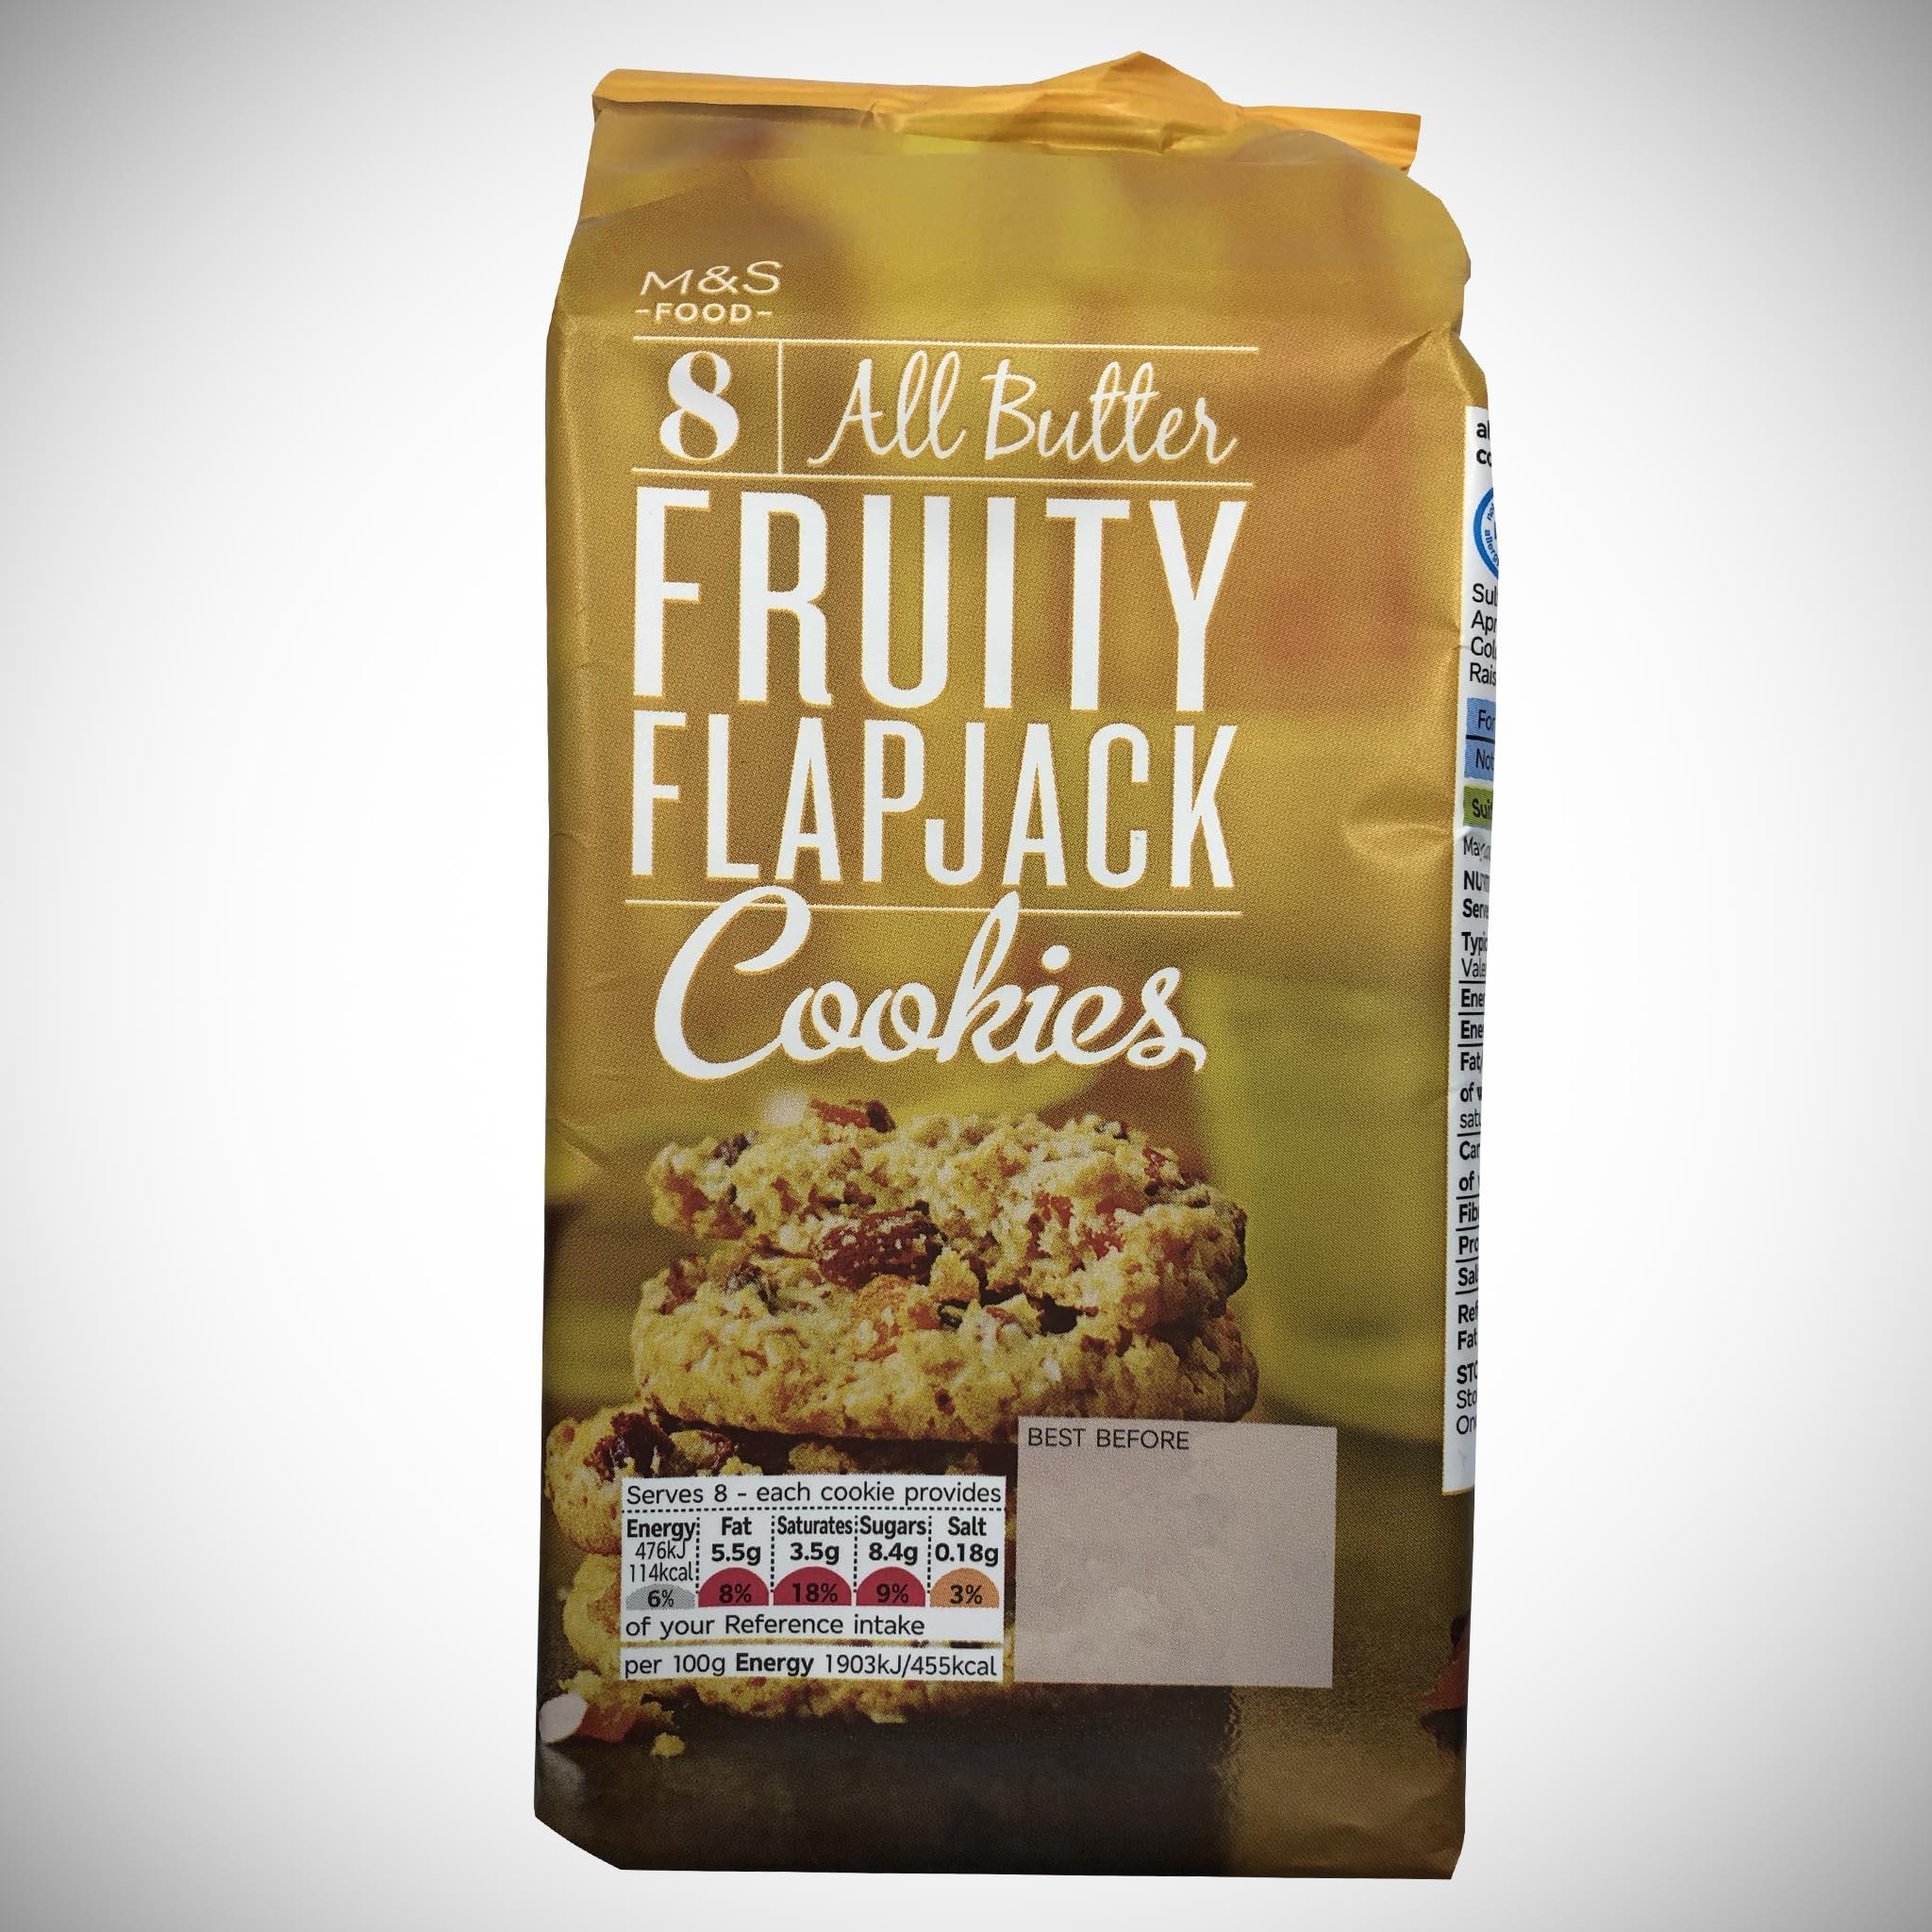 8 All Butter Fruity Flapjack Cookies 200g